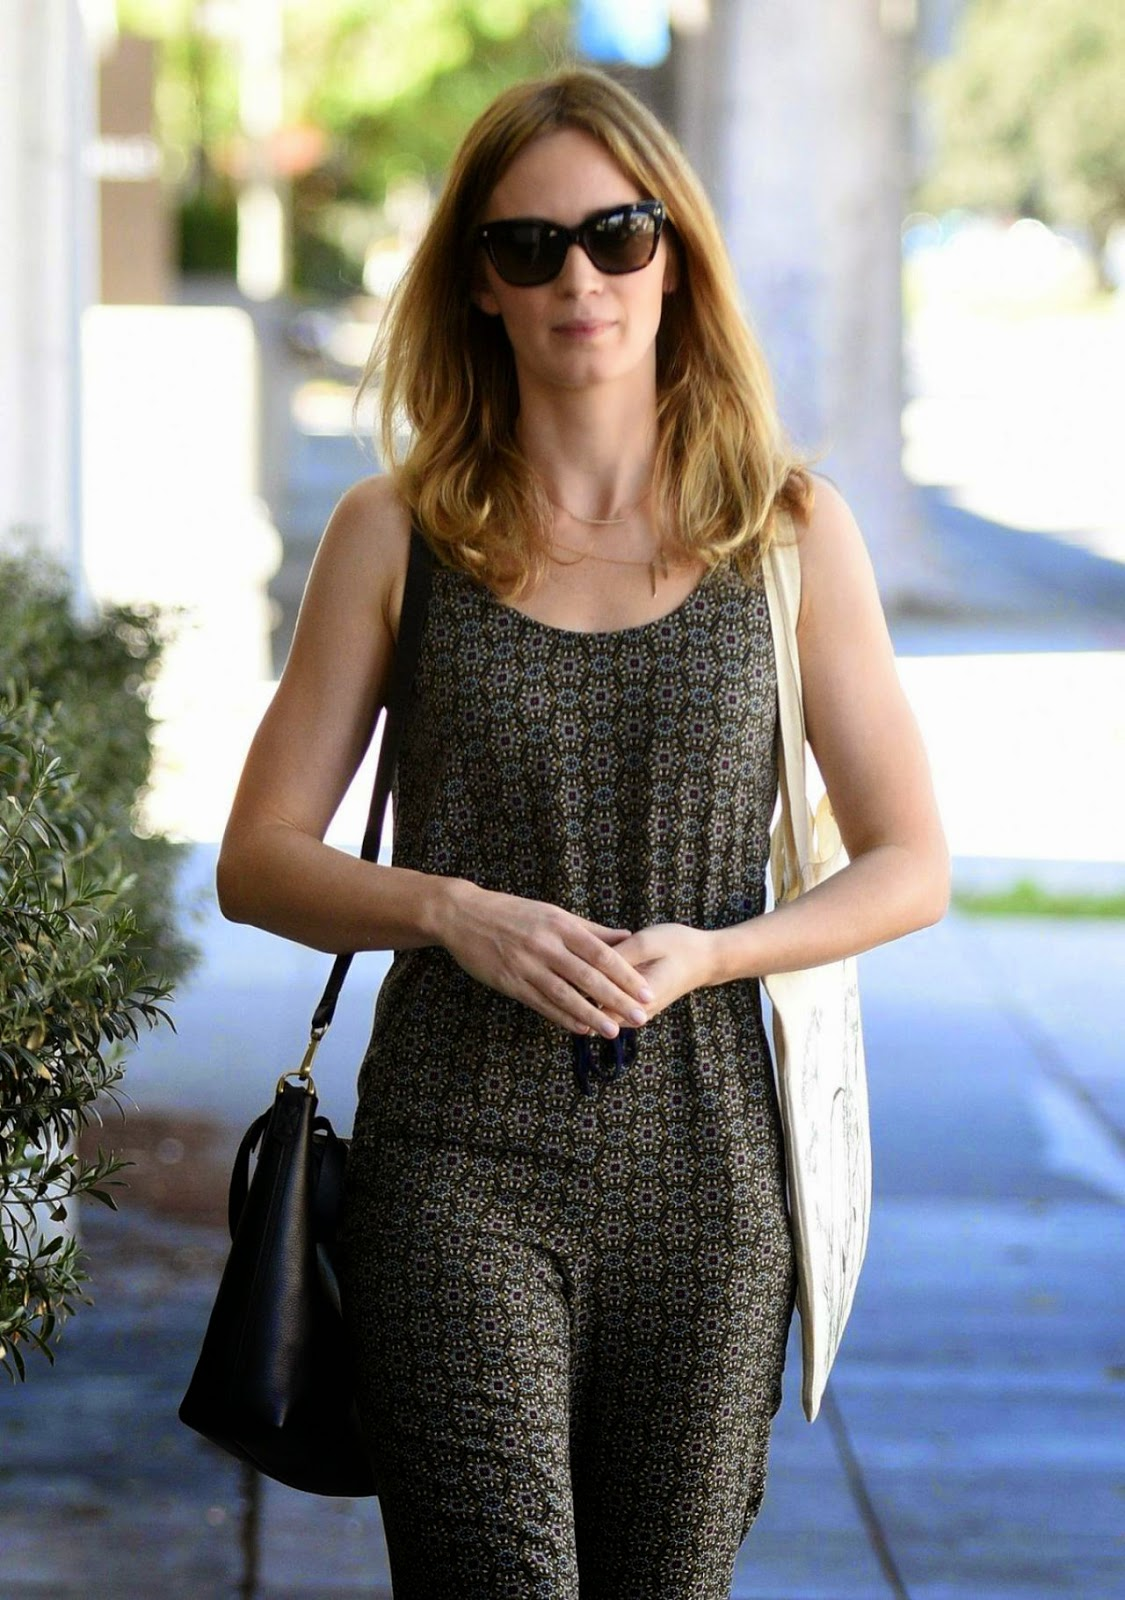 Actress @ Emily Blunt Leaving a Beauty Salon in Los Angeles